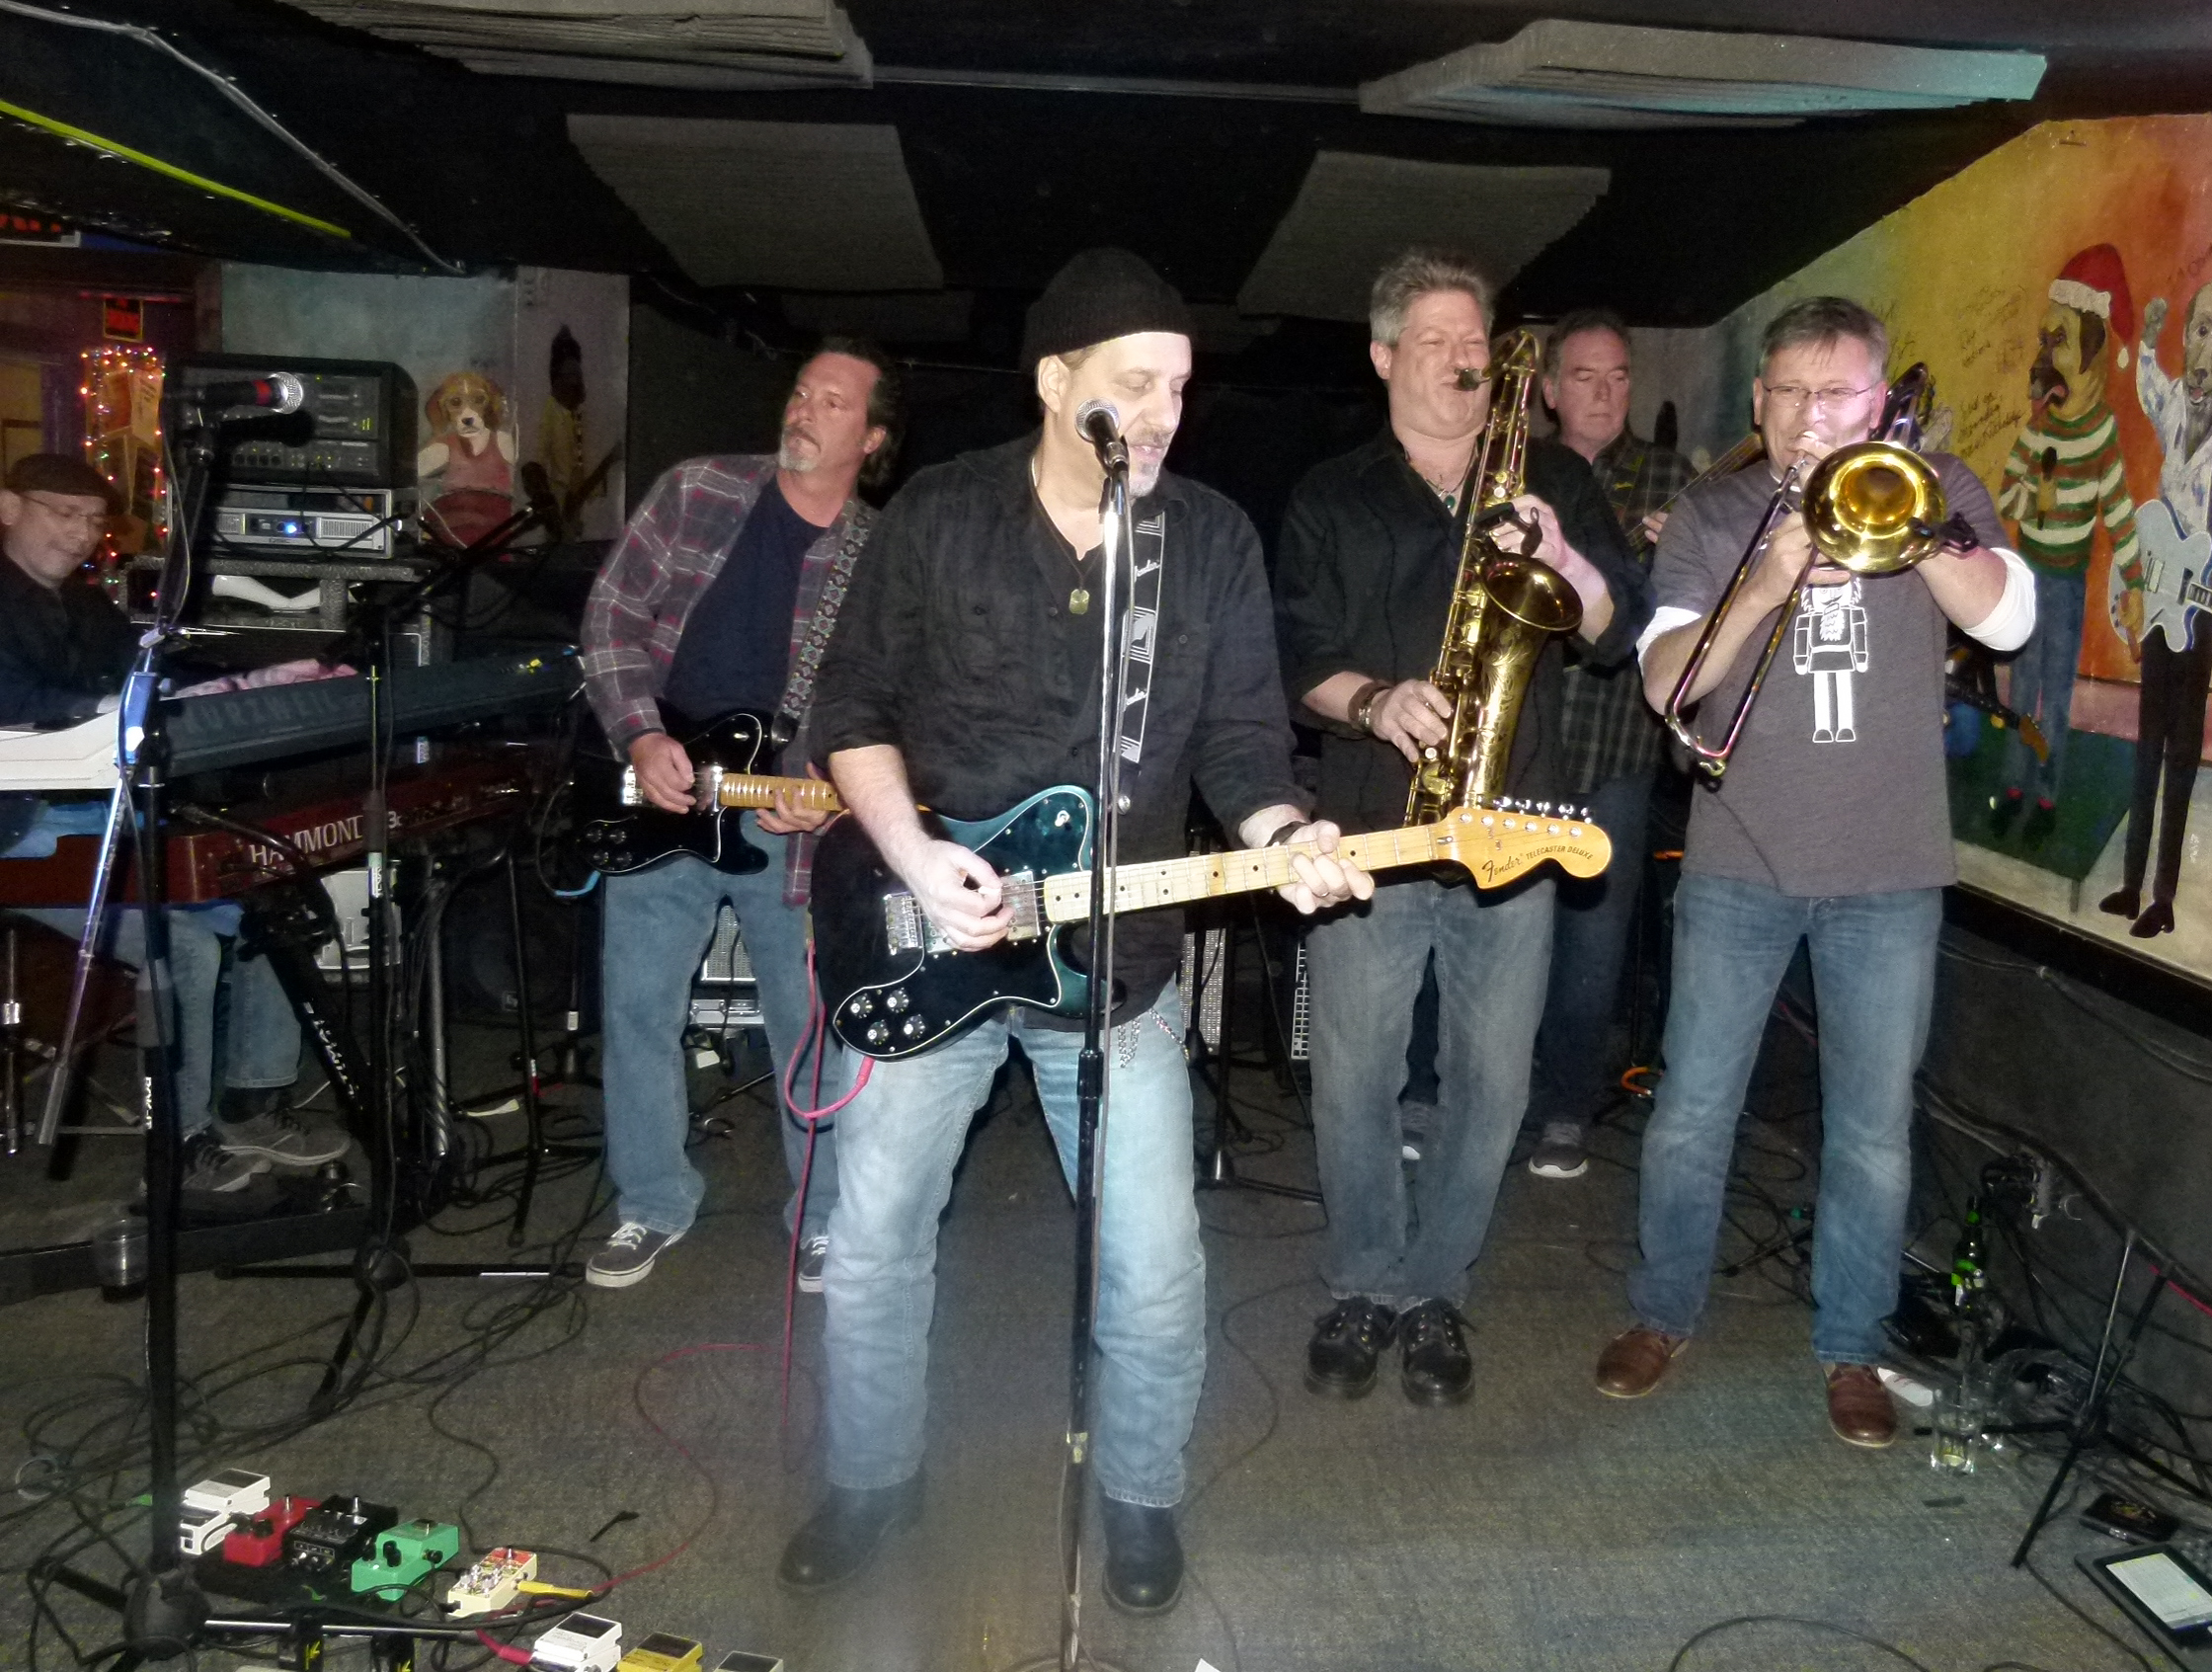 Bill Toms plays some killer lead guitar riffs (c.) while Hard Rain and the Soulville Horns jam on.